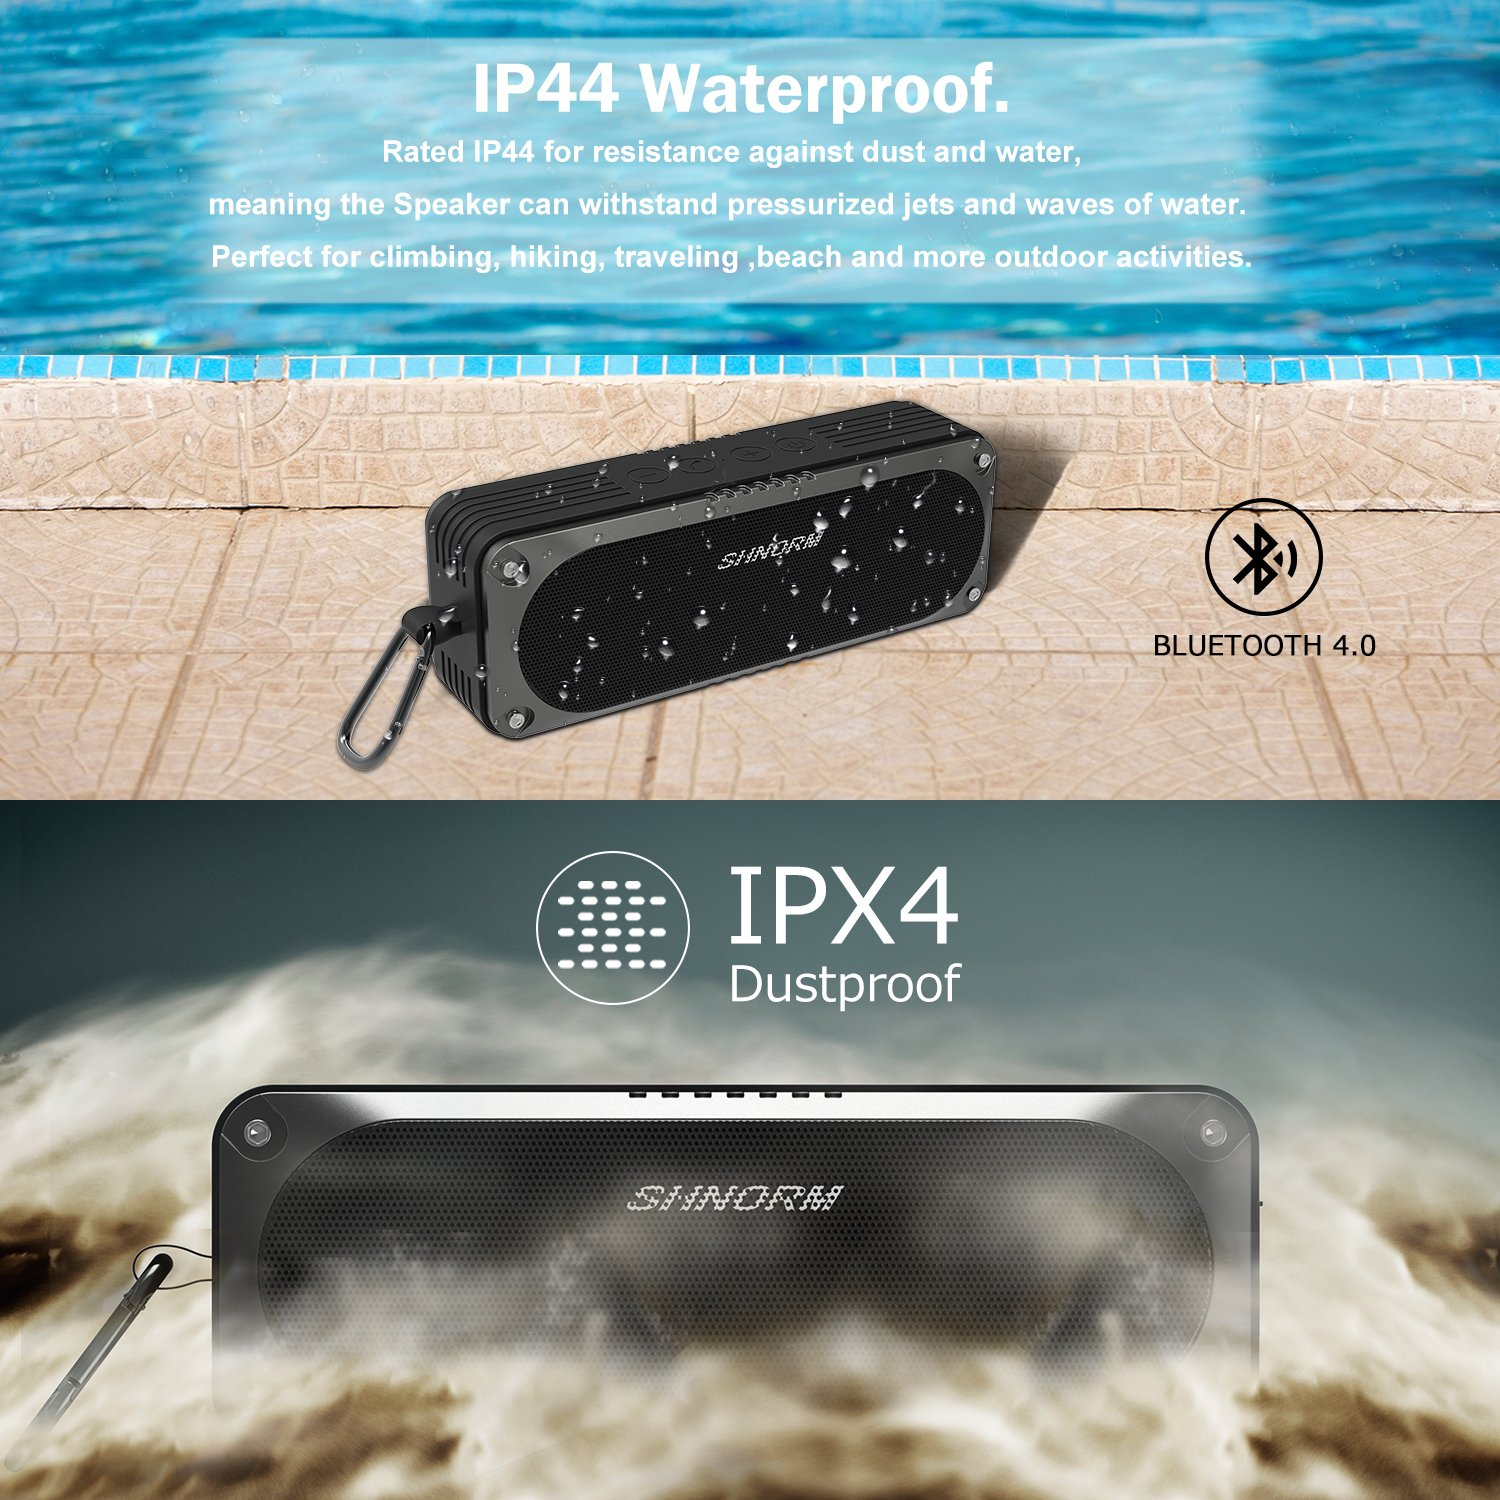 Waterproof 20W Loud Bluetooth Speaker, Dual Bass Stereo Sound Driver Speakers, 4400mah USB Rechargeable Battery, Built-in Microphone for Handsfree Calling, 3.5mm AUX Input Port Supported